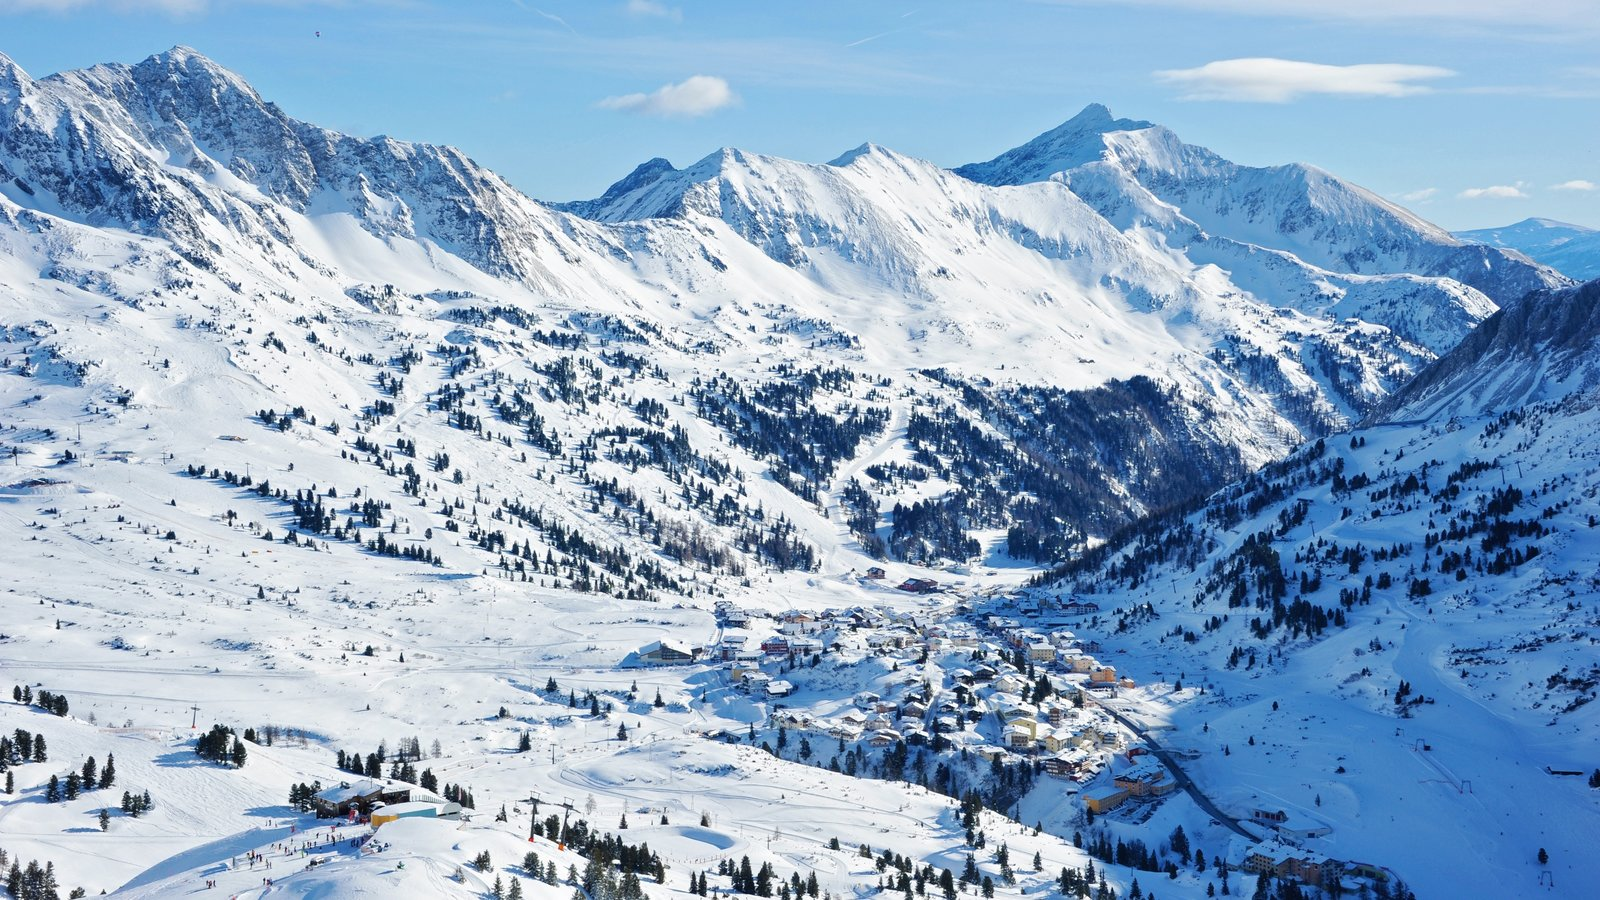 Obertauern showing mountains, snow and landscape views